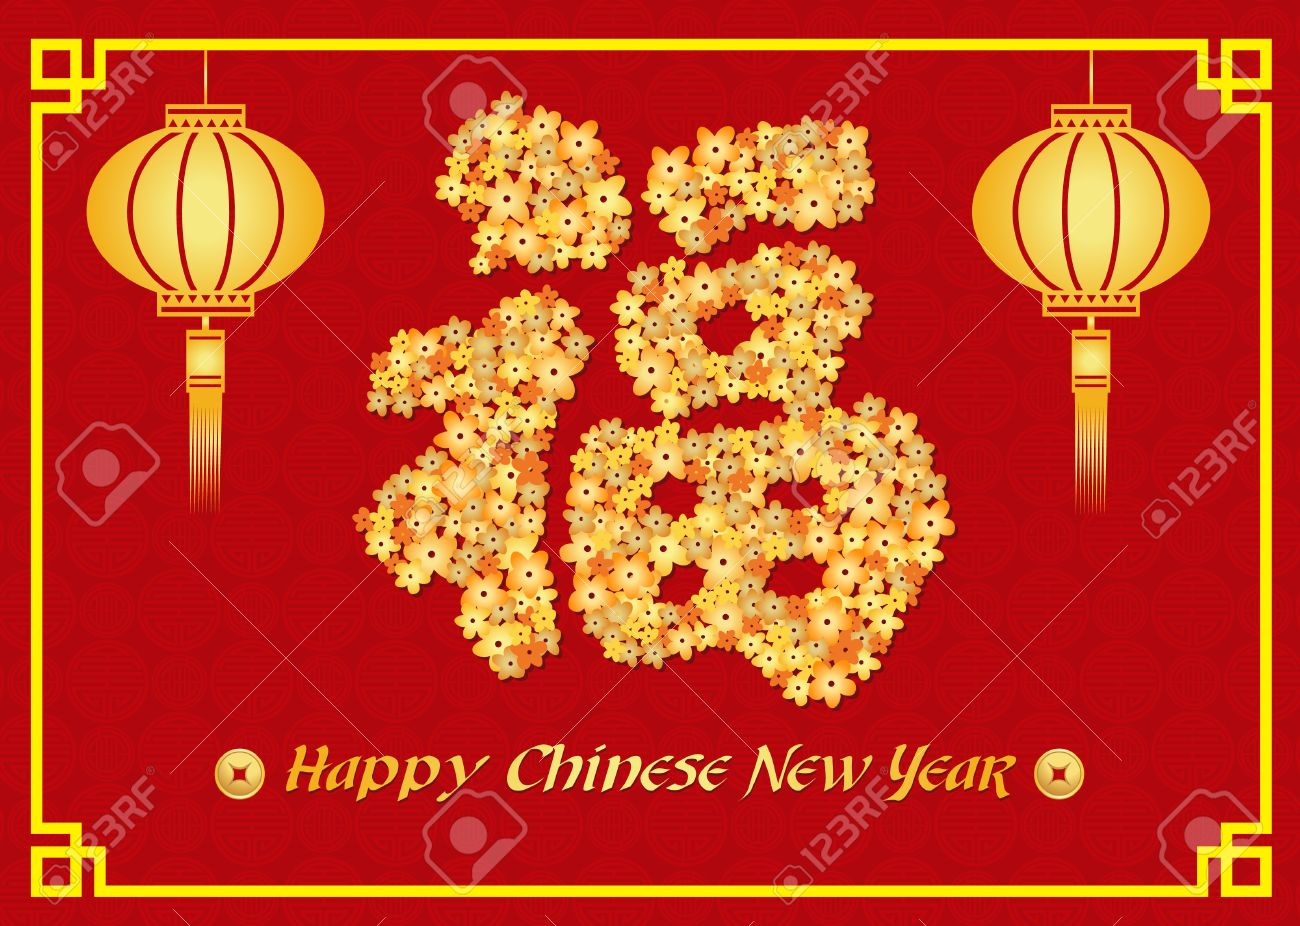 Happy Chinese New Year Card With Lanterns And Gold Flower China